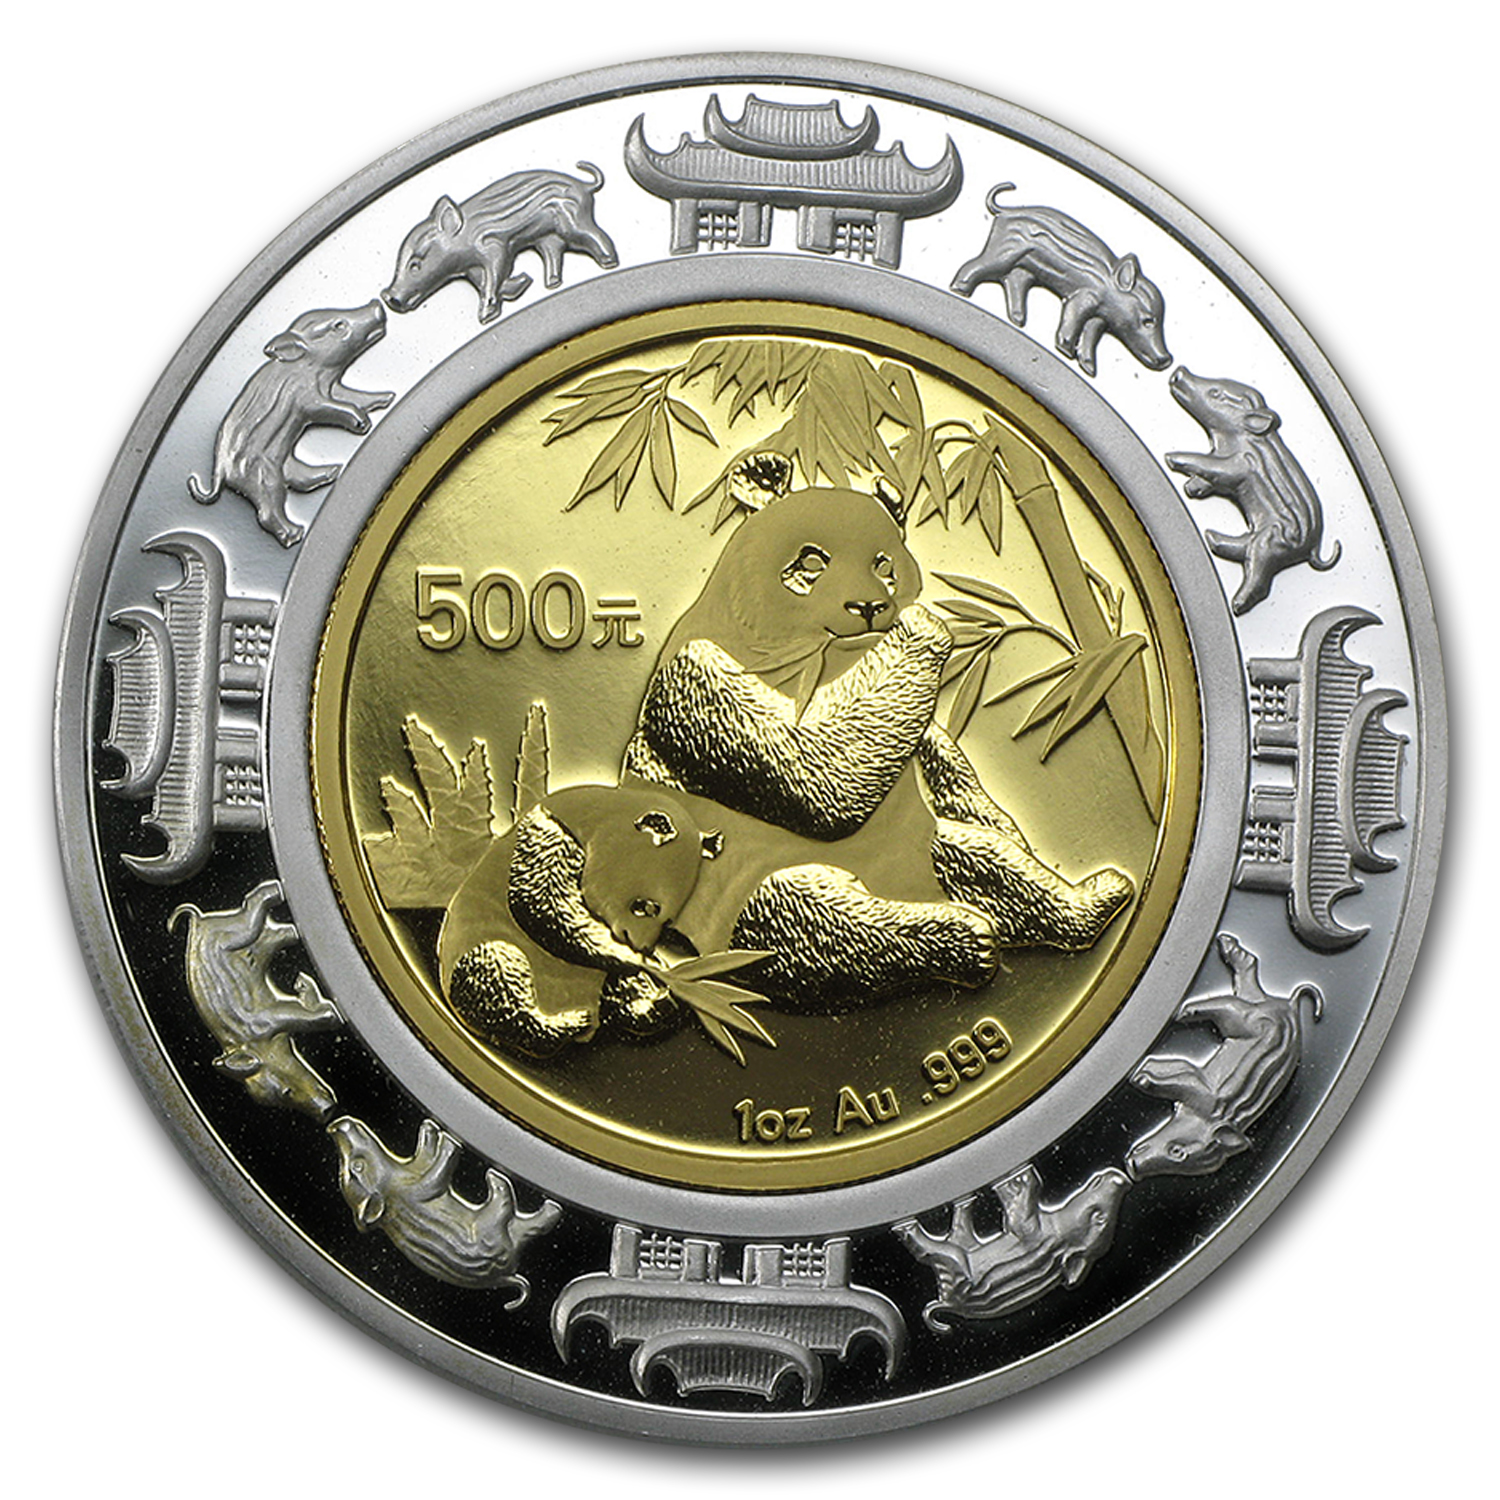 2007 China 1 oz Gold & Silver Panda Prestige Lunar Pig Proof